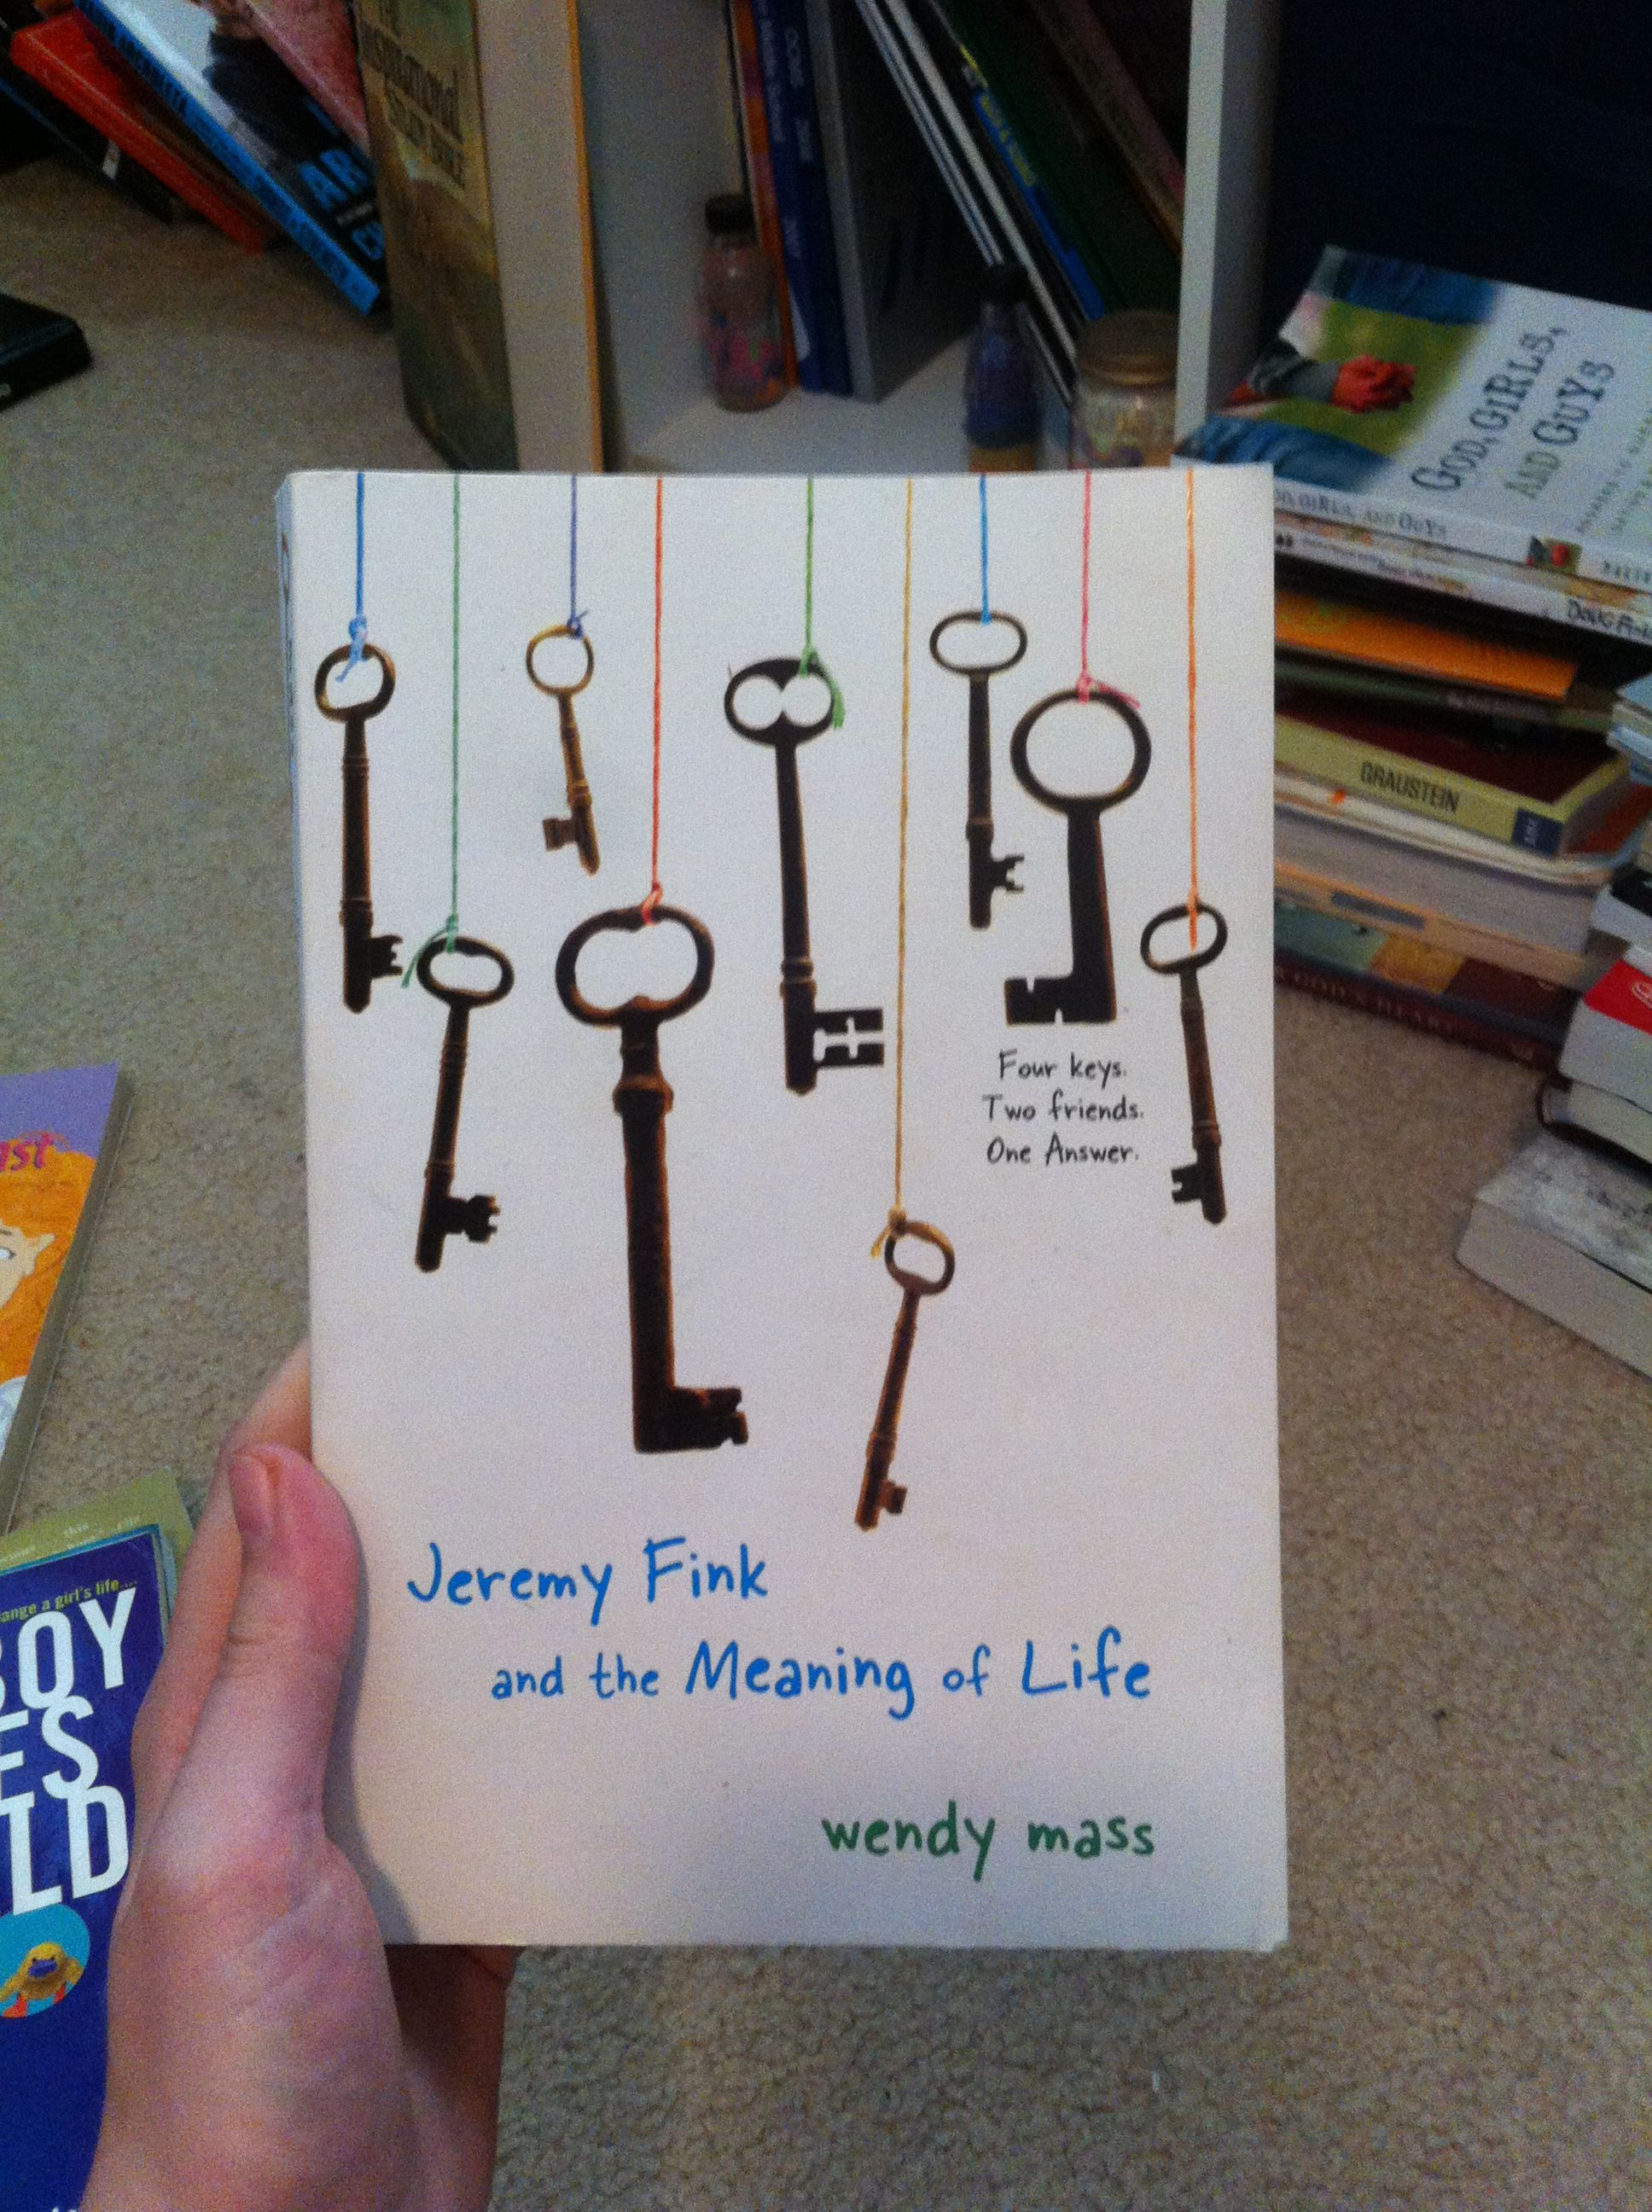 Jeremy fink and the meaning of life by wendy mass d jeremy fink jeremy fink and the meaning of life by wendy mass d jeremy fink and the meaning of life pinterest of life the ojays and life fandeluxe Images